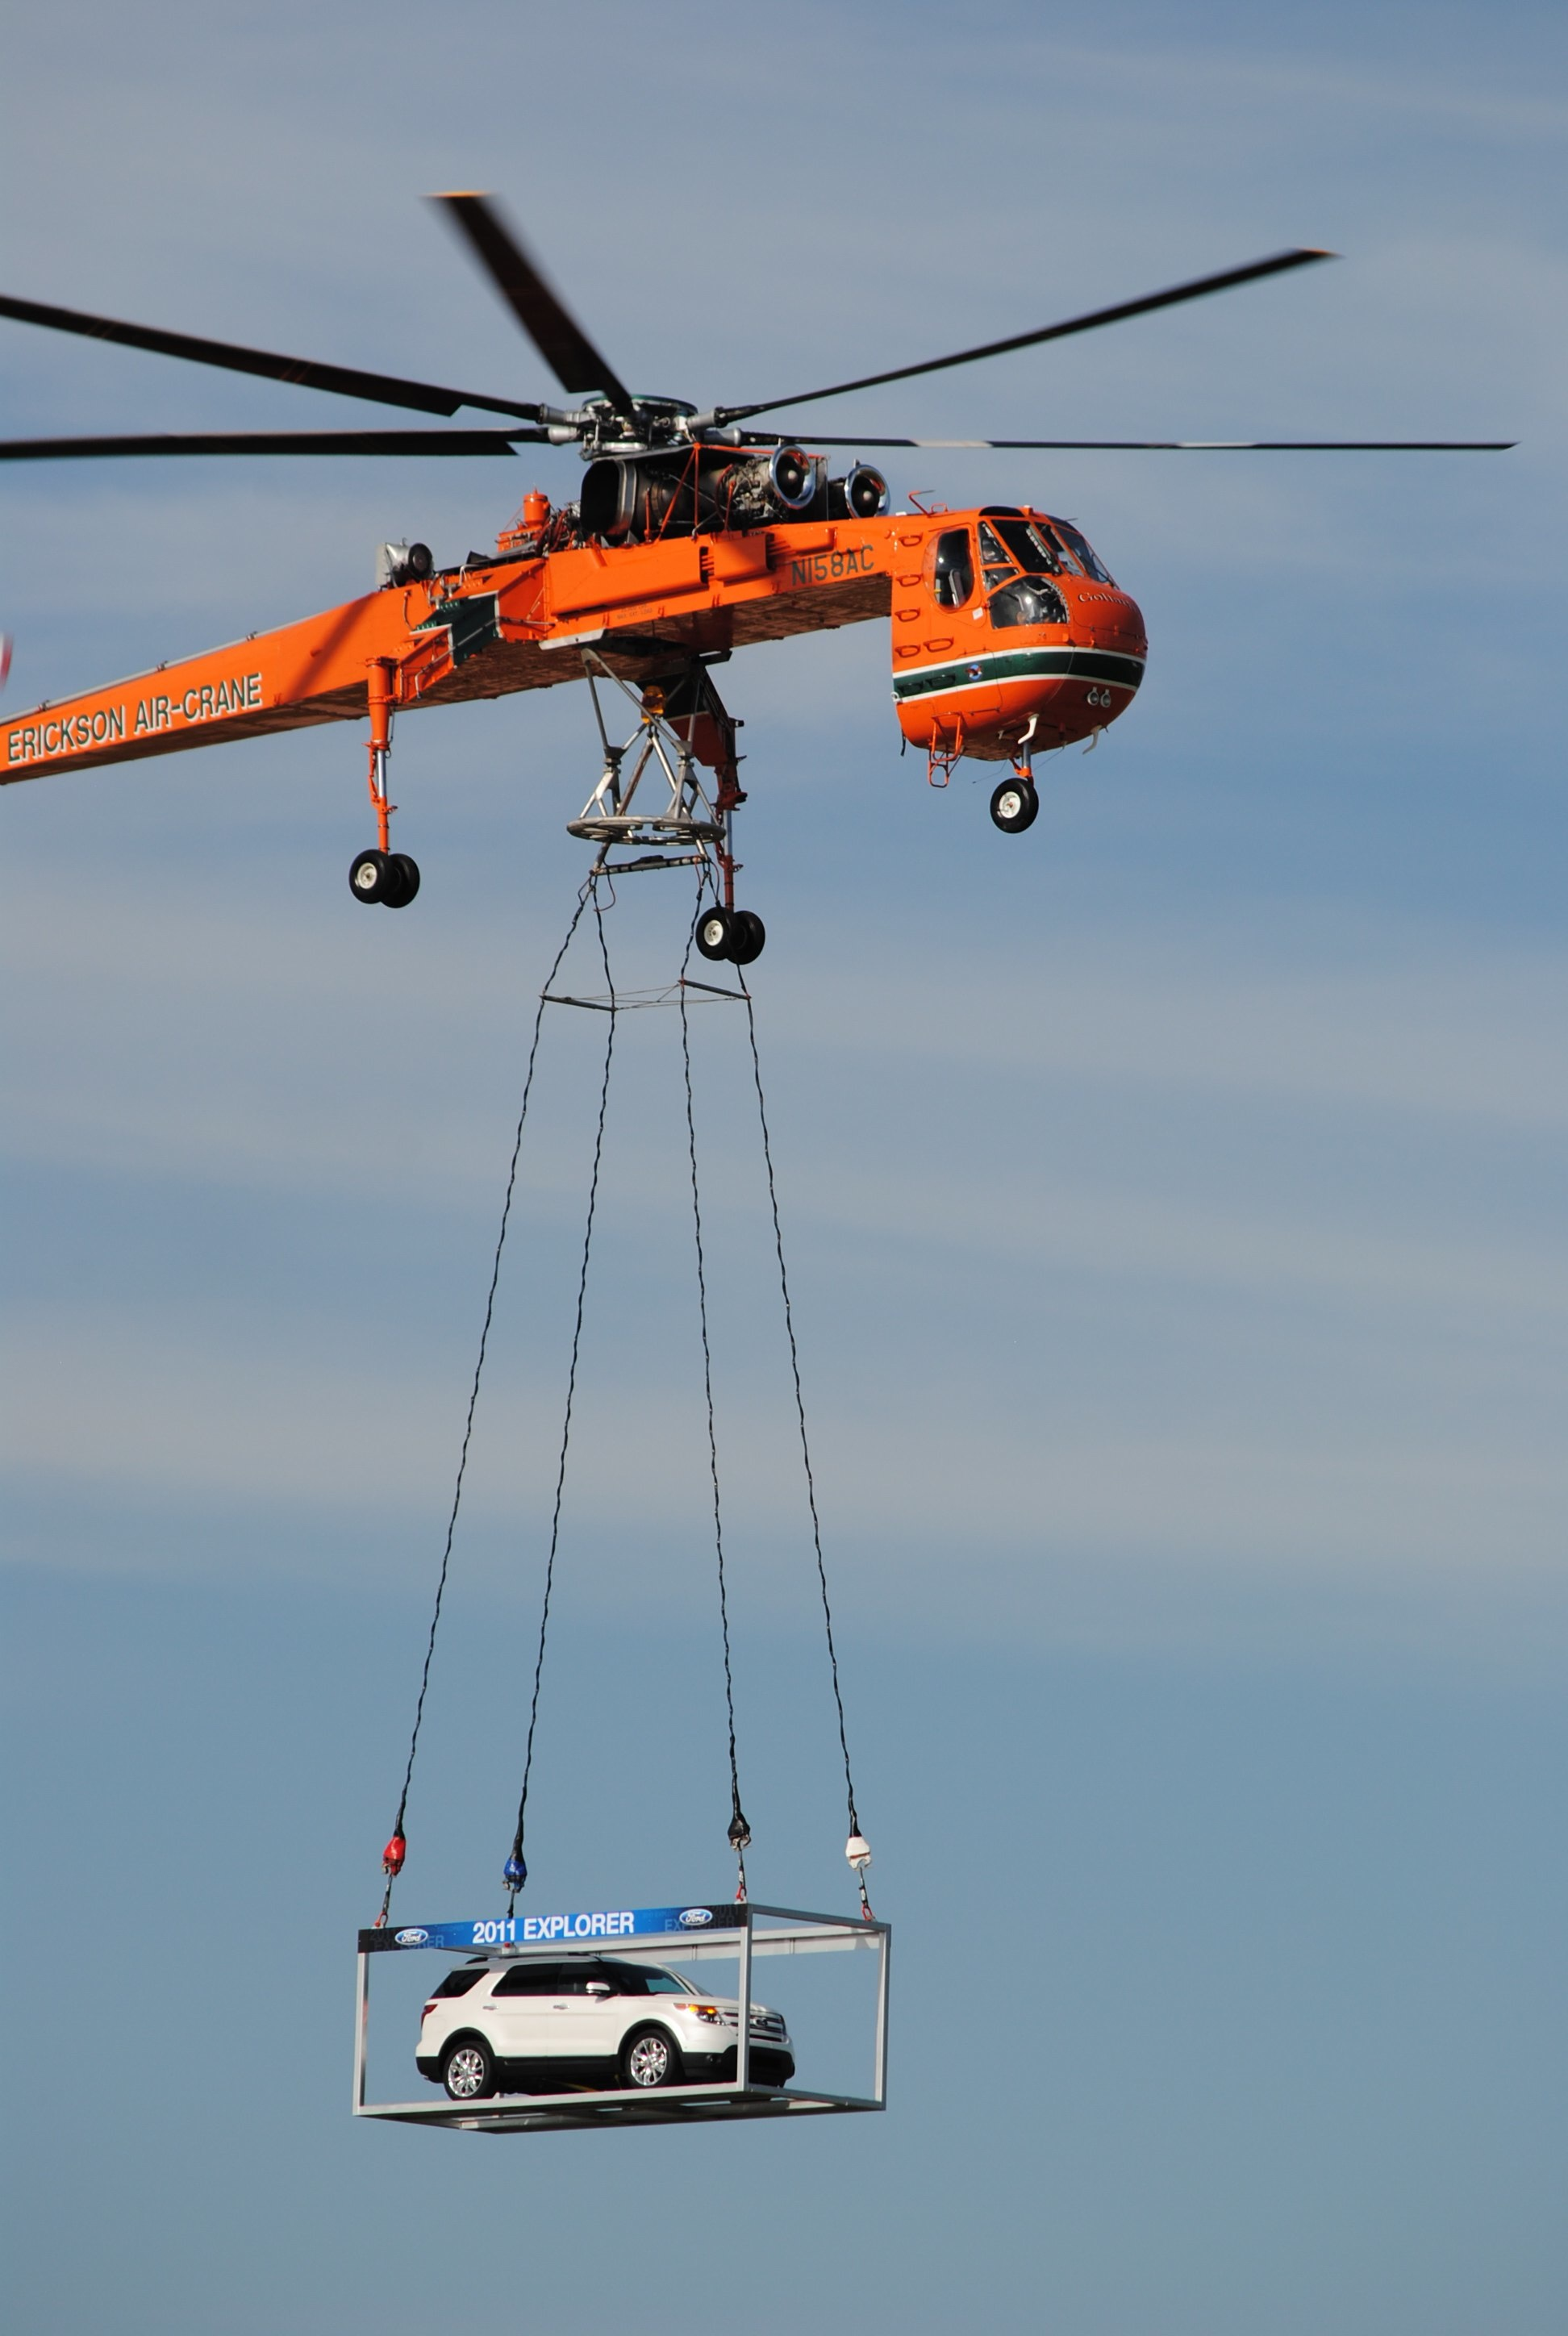 erickson air crane helicopter with 38 on 12051136 furthermore 38 additionally 18425519 as well 181723 also 1586487.